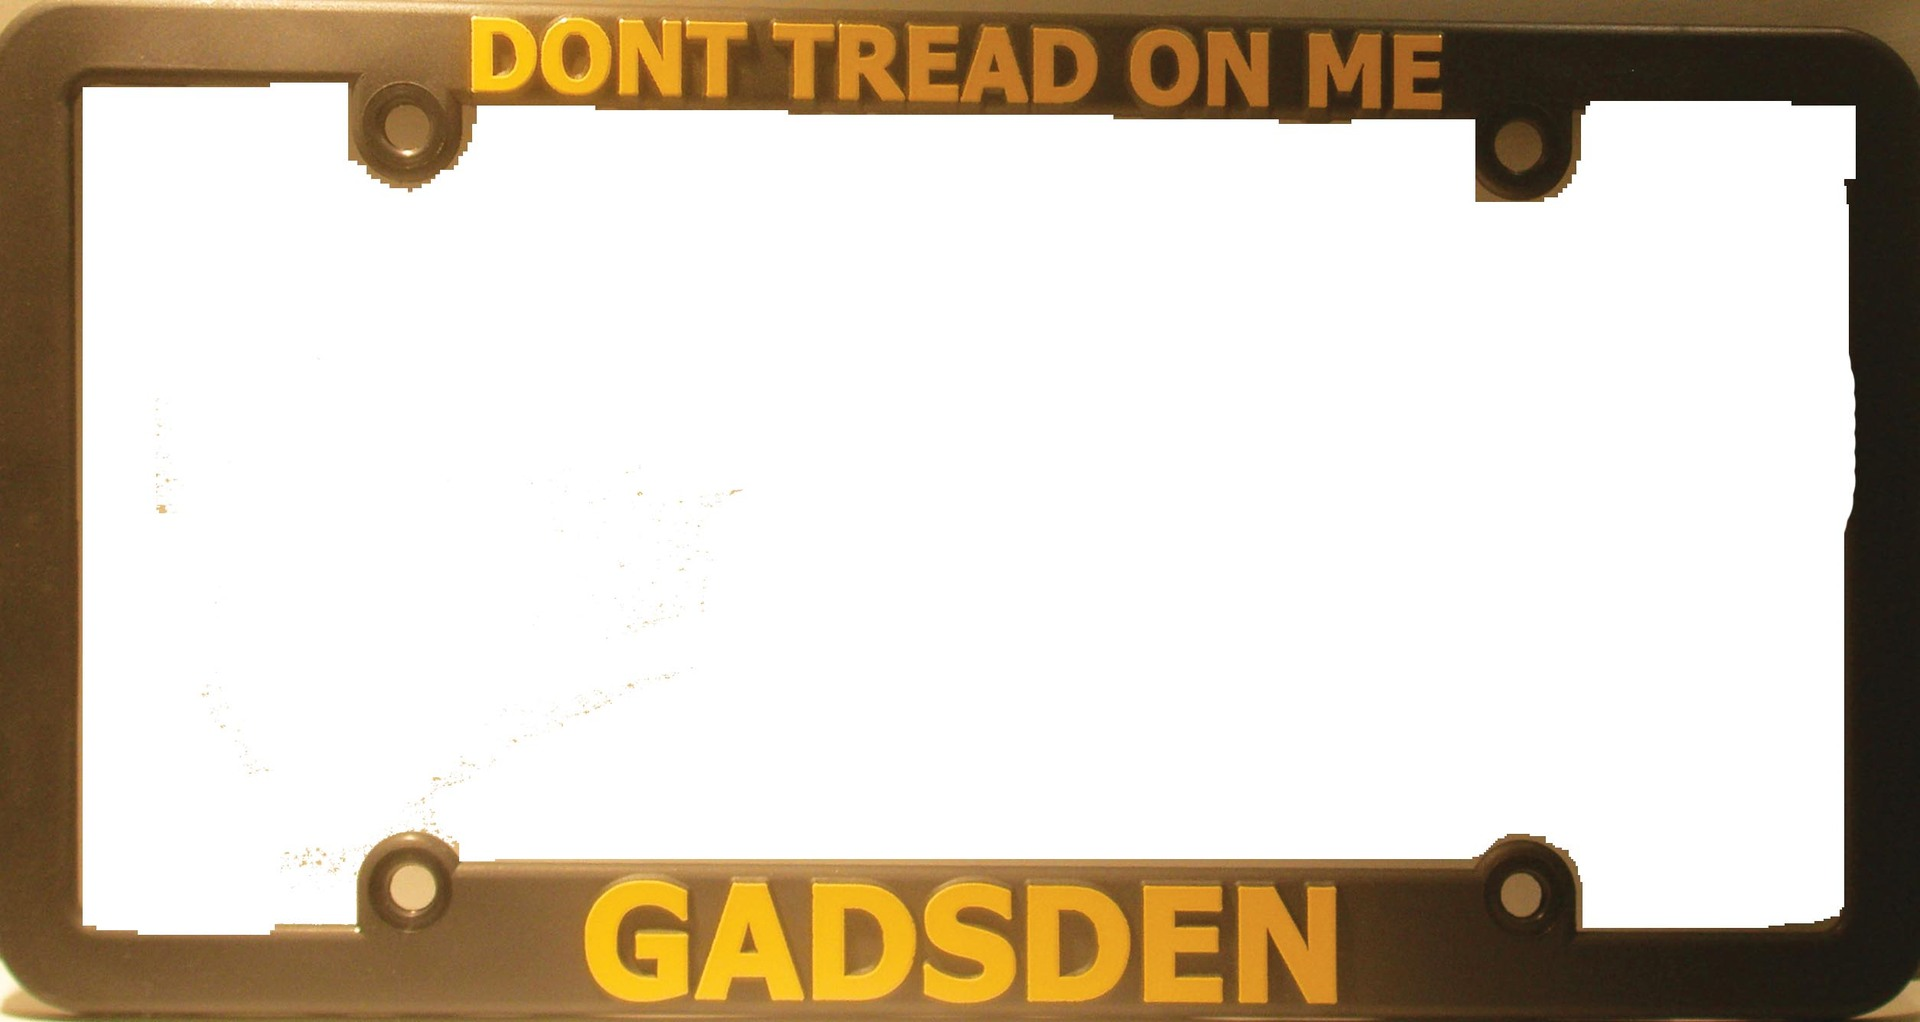 dont tread on me gadsden plastic license plate frame - Don T Tread On Me License Plate Frame